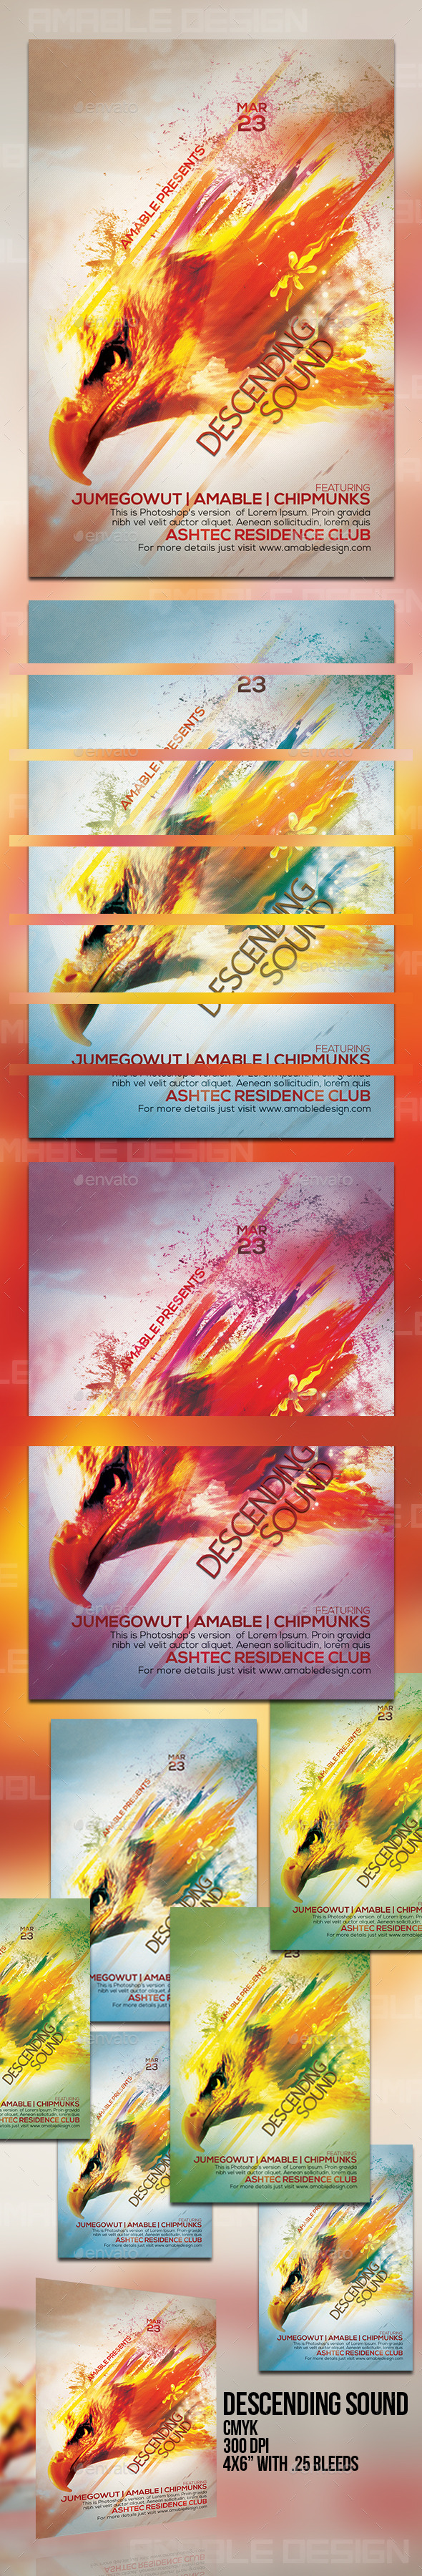 Descending Sounds Flyer - Clubs & Parties Events